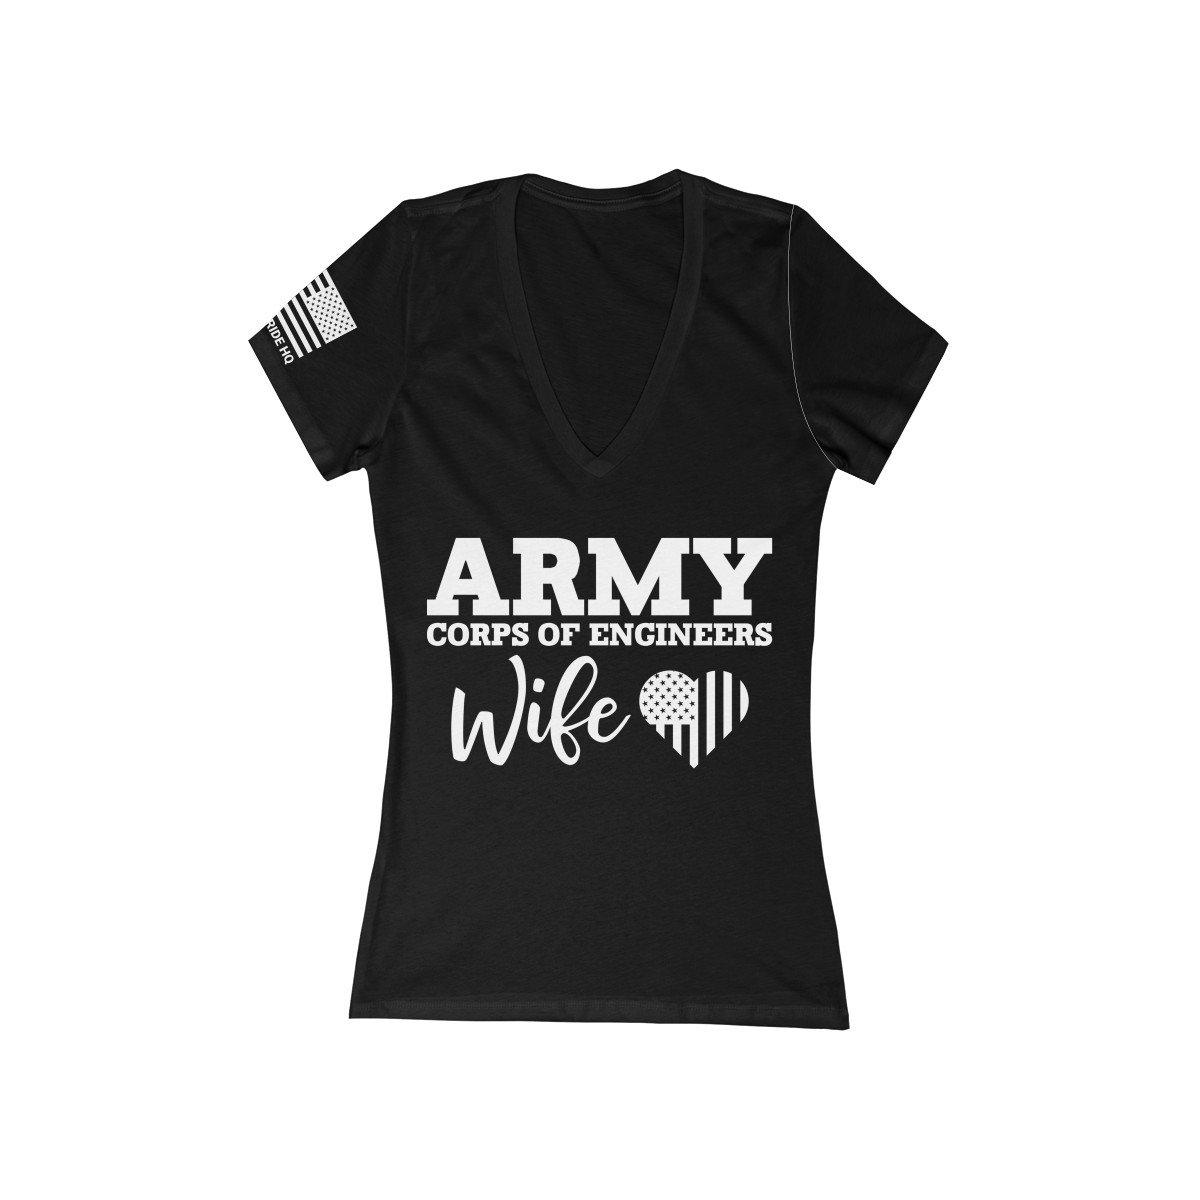 Army Corps of Engineer Wife Women's V-Neck Tee